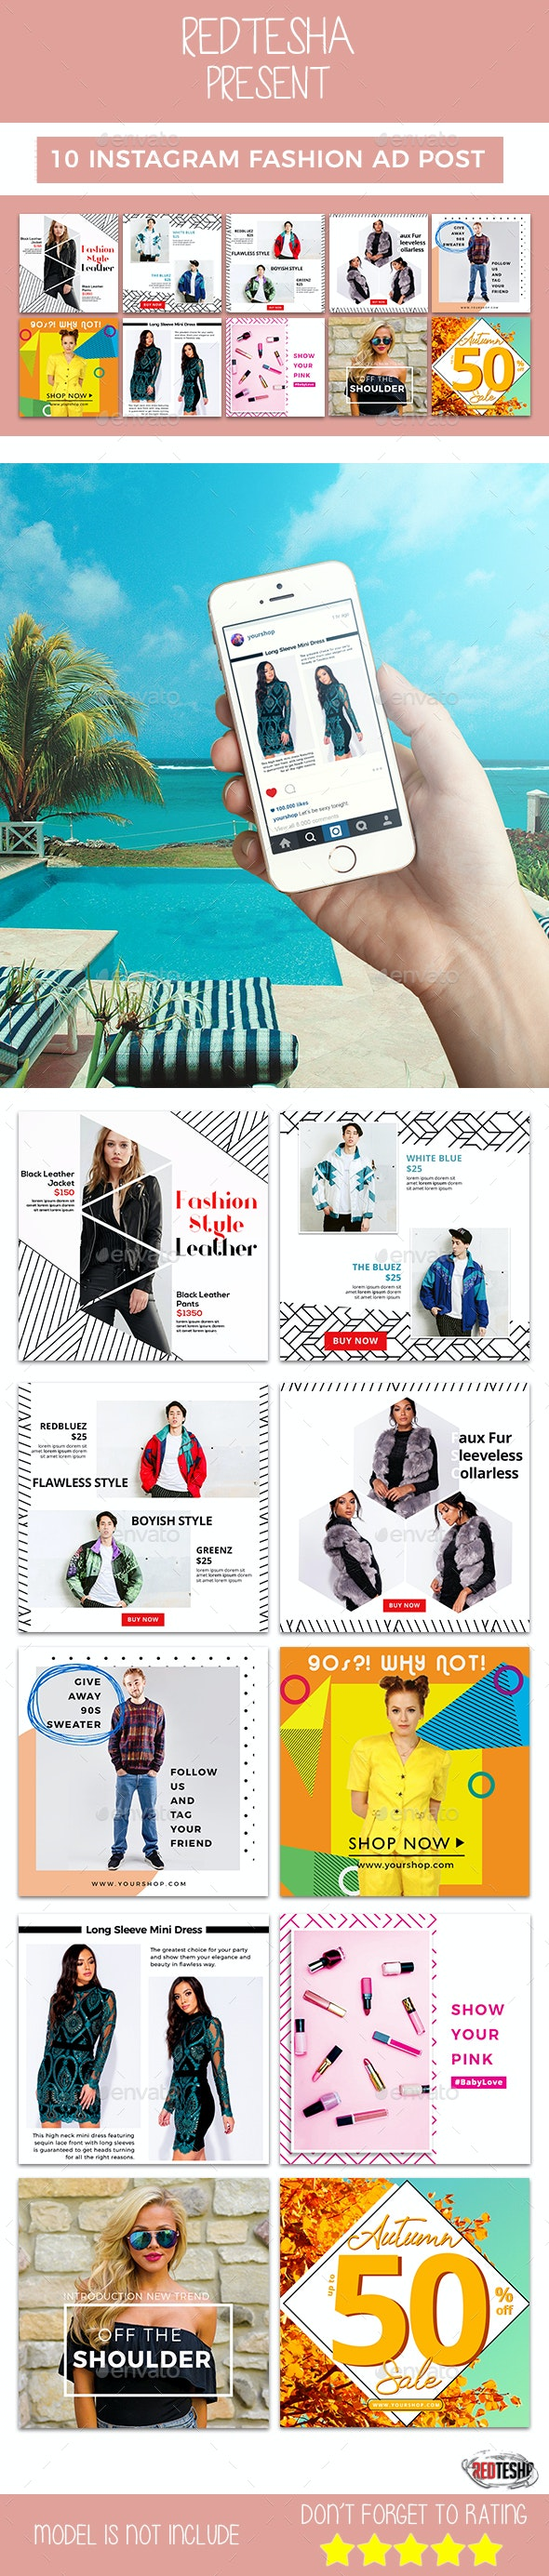 Instagram Fashion Banner #16 - Banners & Ads Web Elements